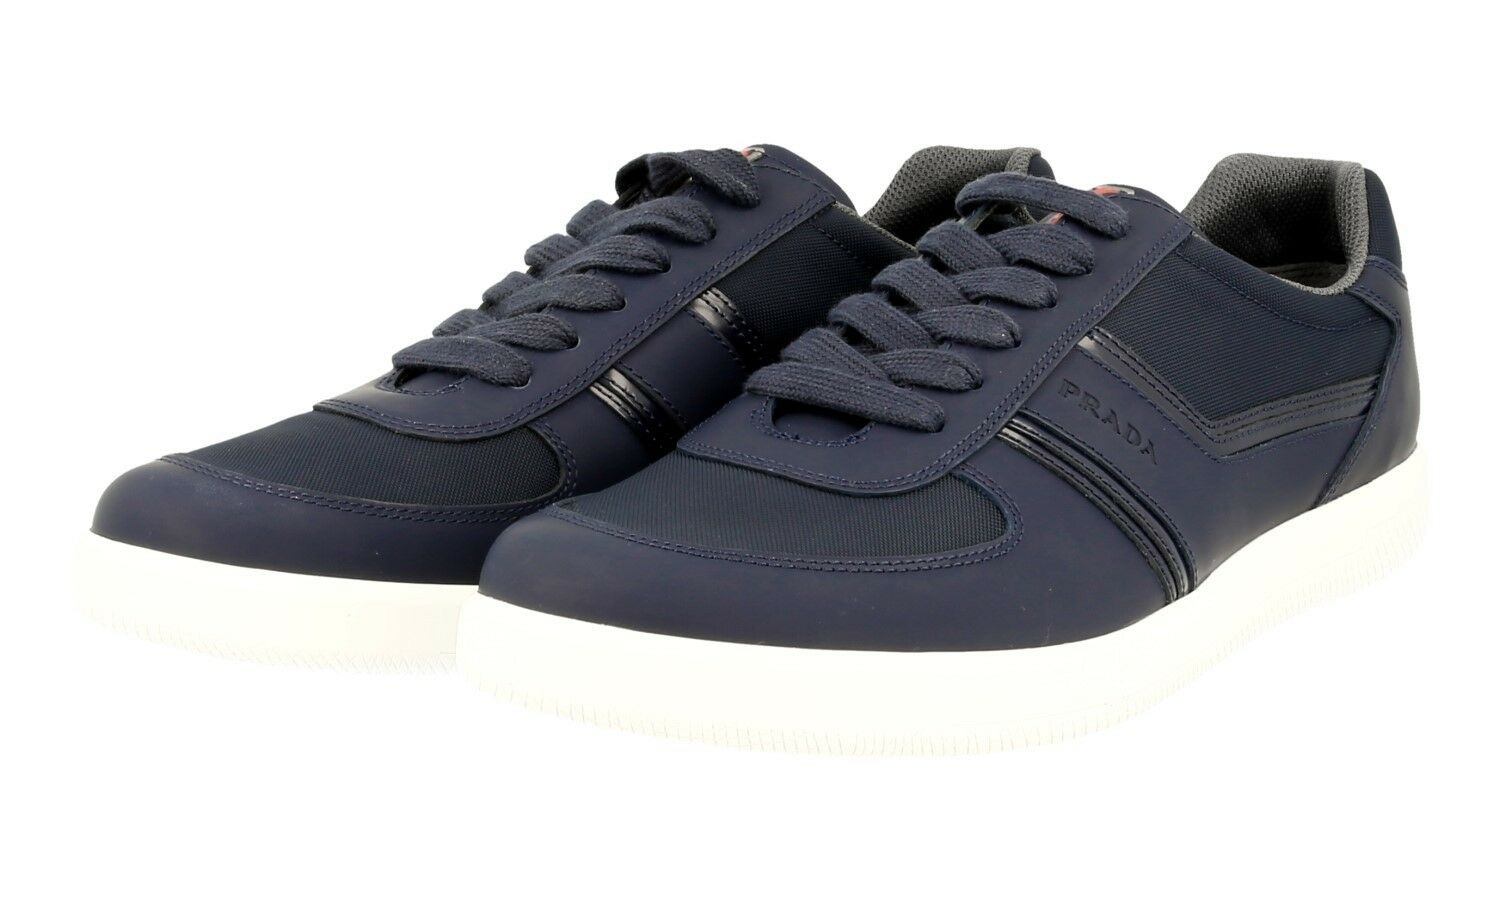 AUTH LUXURY PRADA SNEAKERS SHOES 4E3026 BALTIC BLUE NEW US 12